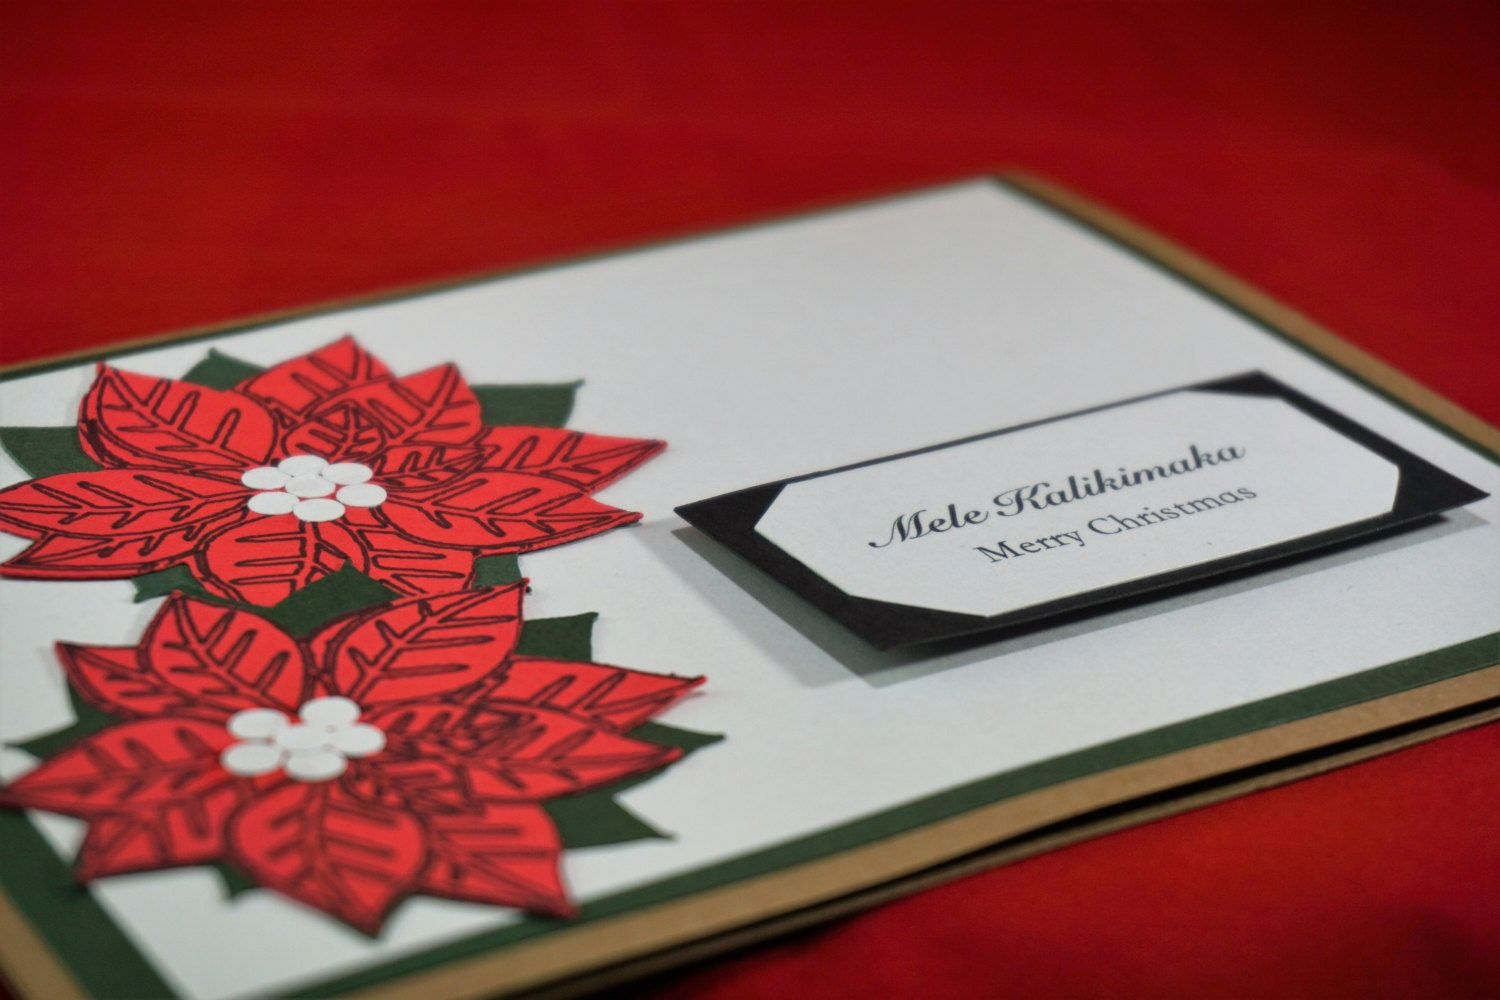 hawaiian christmas card, mele kalikimaka, made in hawaii, gift for her, gift for him, red, green, hawaii love card by xoxoTi on Etsy